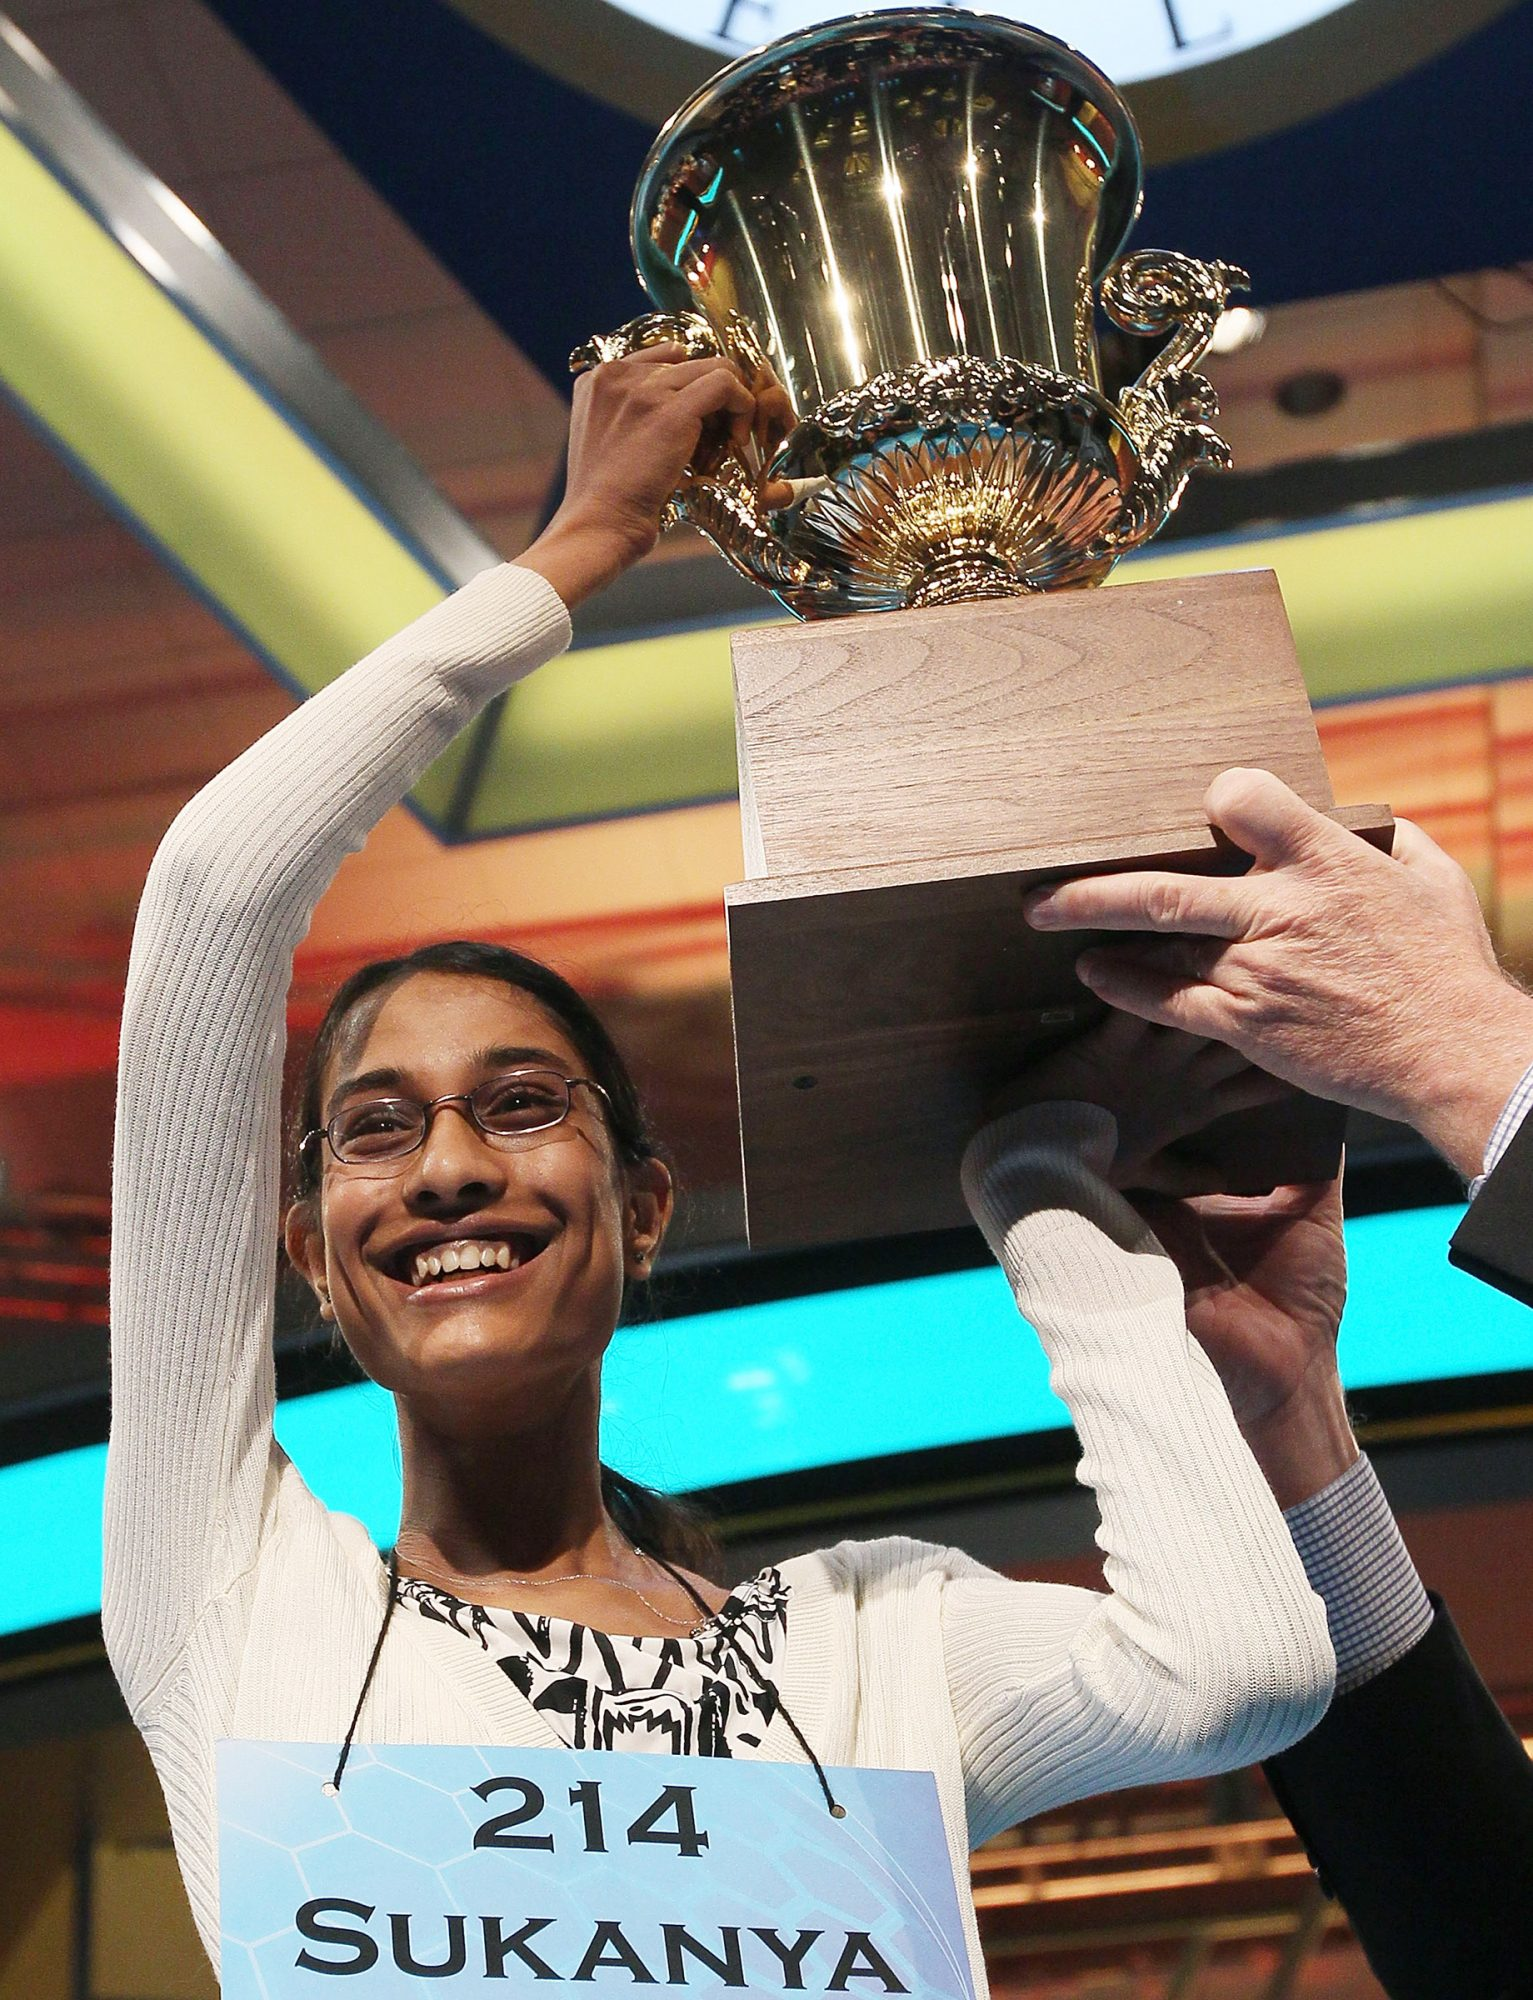 Sukanya Roy of South Abington Township, Pennsylvania holds up the trophy after winning the 2011 Scripps National Spelling Bee competition June 2, 2011 in National Harbor, Maryland